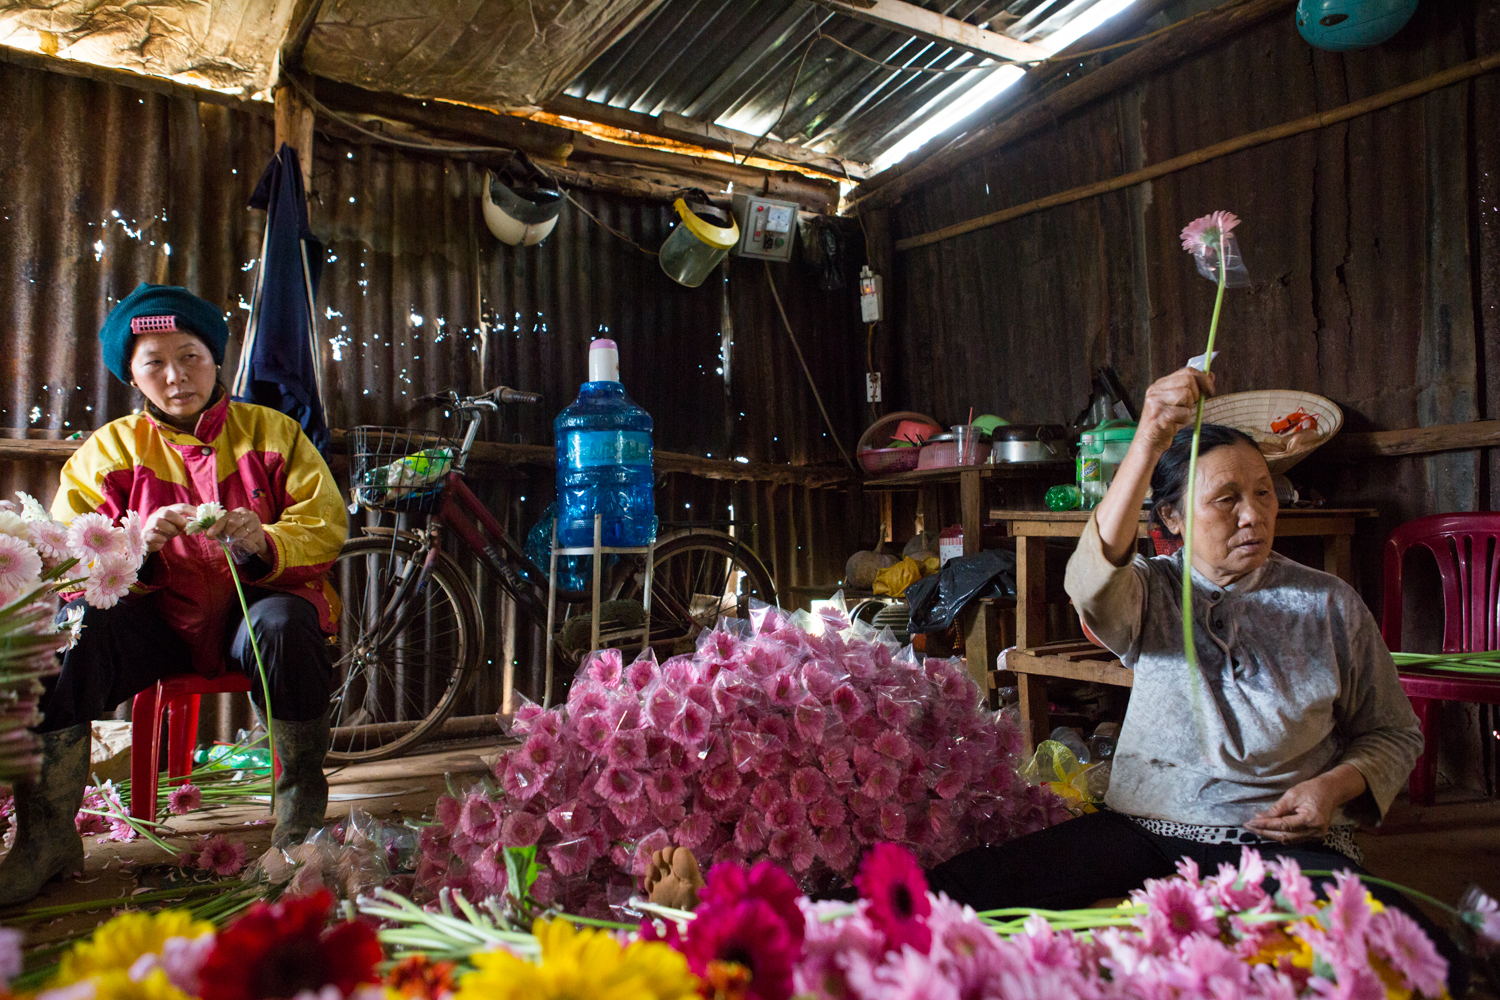 In Dalat, Vietnam, two women sit on the floor and attach a plastic covering to protect recently cut flowers that will be shipped to market.